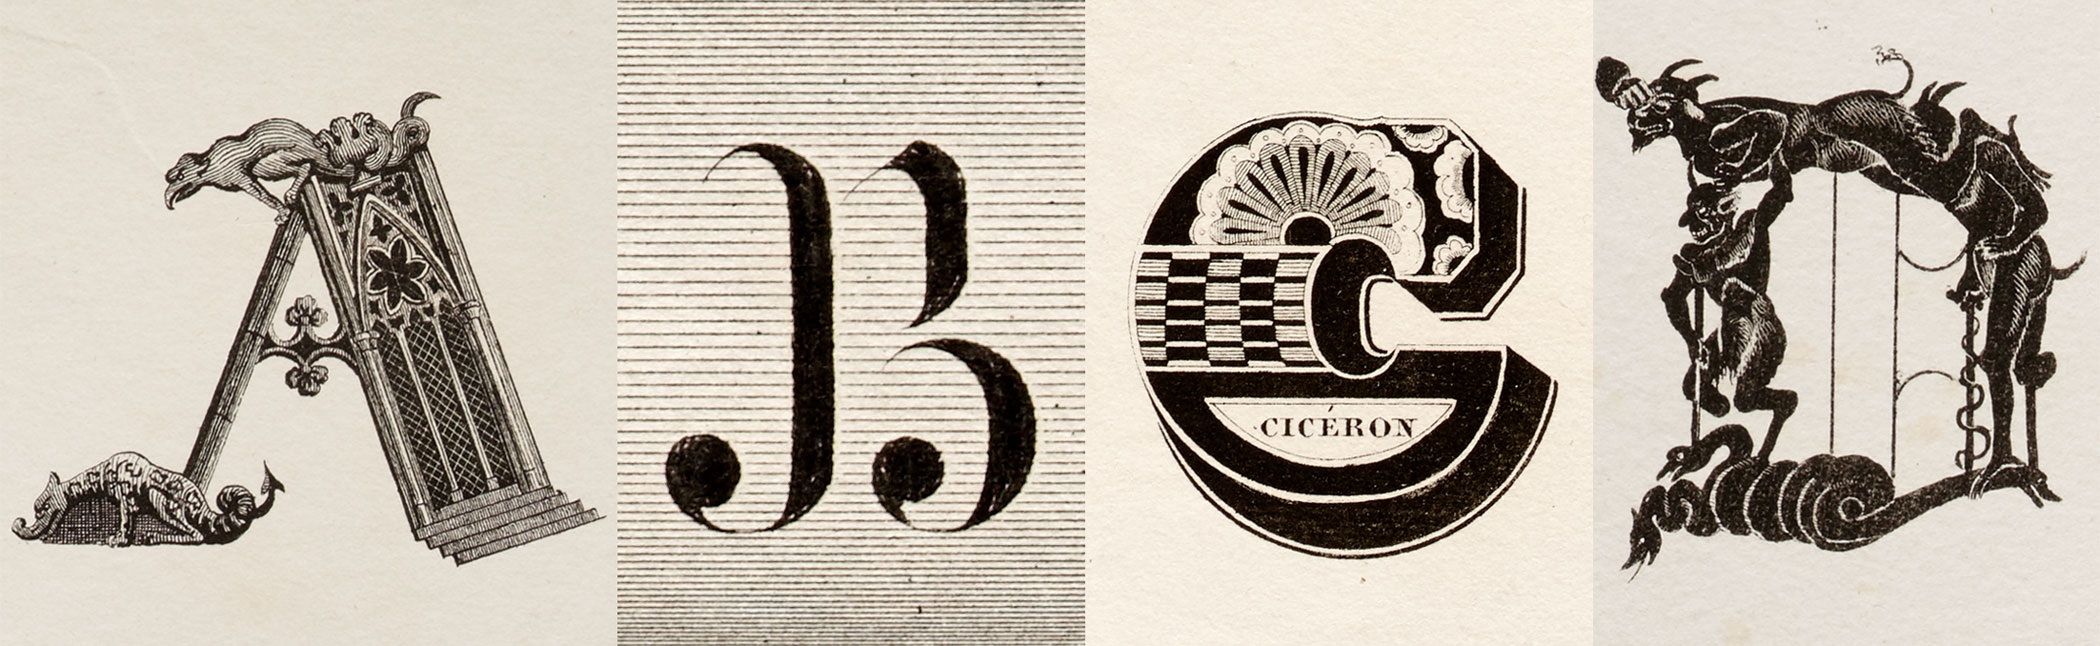 From left to right, letters from the Spécimen des écritures modernes… portfolio: Gothique Composée; Midolline; Alphabet Lapidaire Monstre; Alphabet Diabolique, Emile Simon fils press, France, 1835. (All cropped, see full images below.)